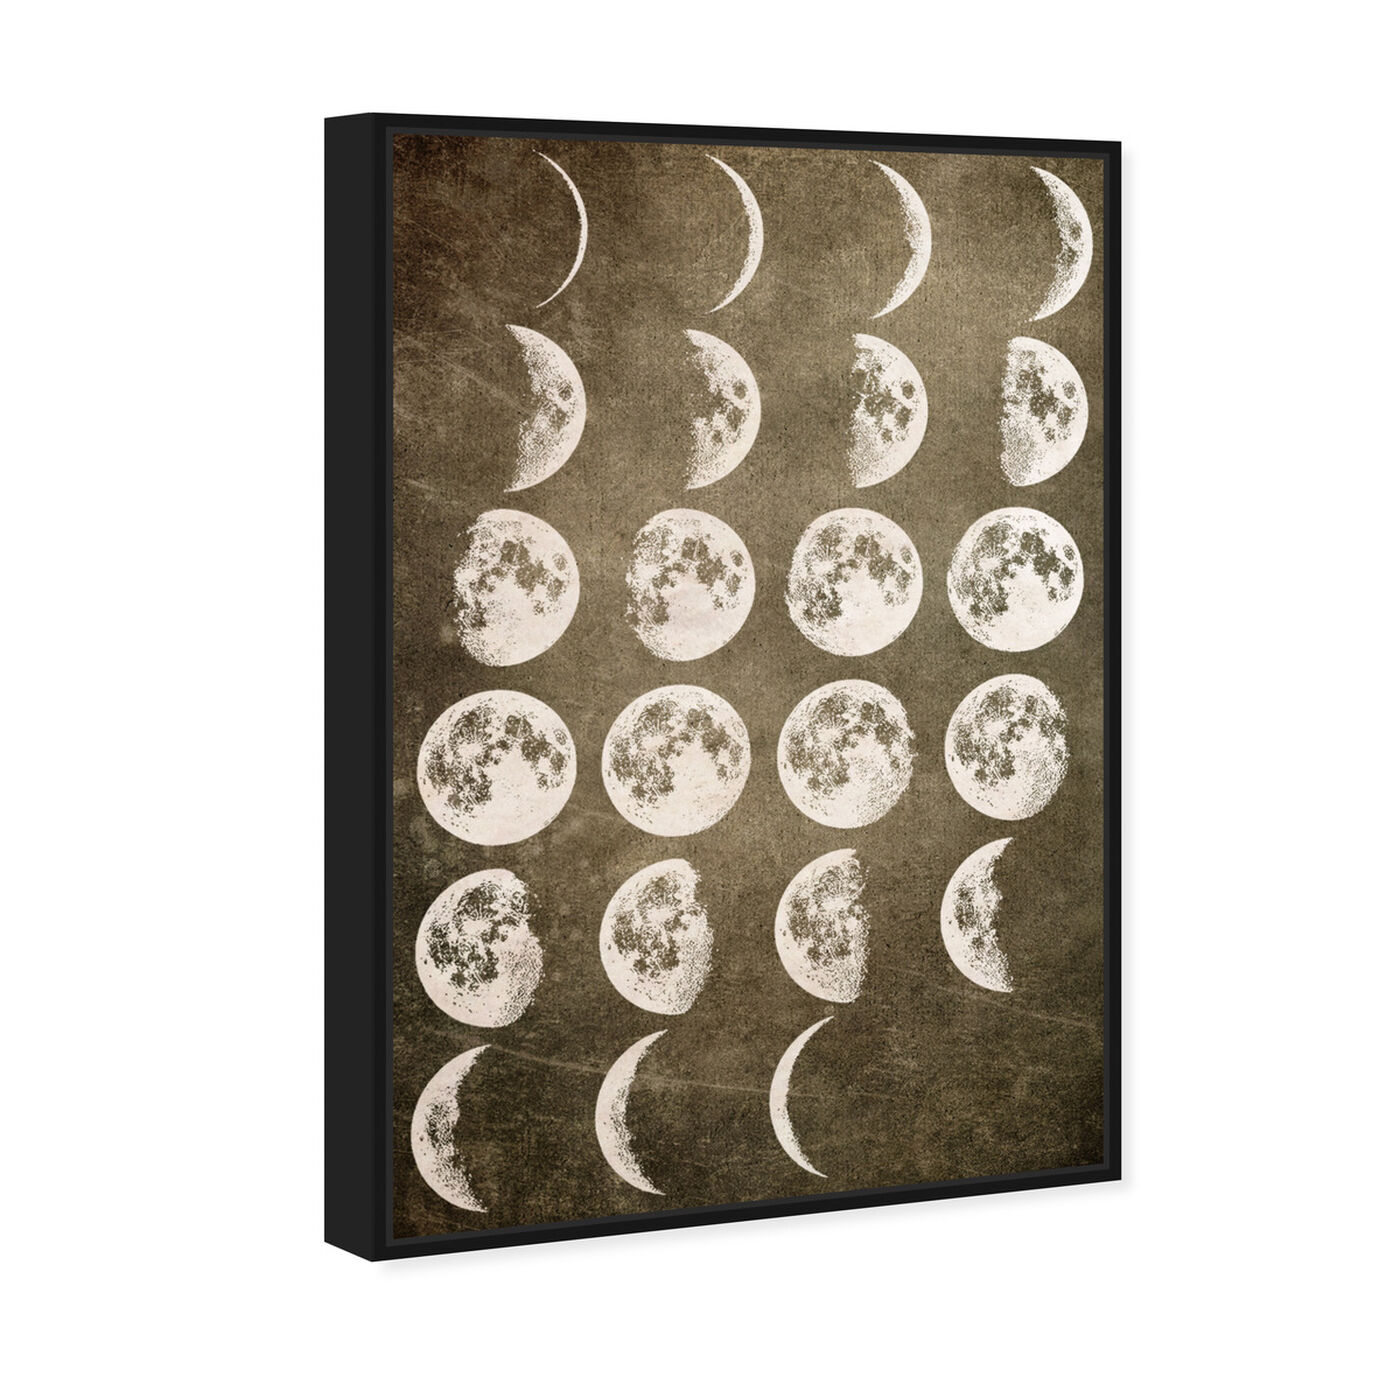 Angled view of Lunar Phases featuring astronomy and space and moons phases art.